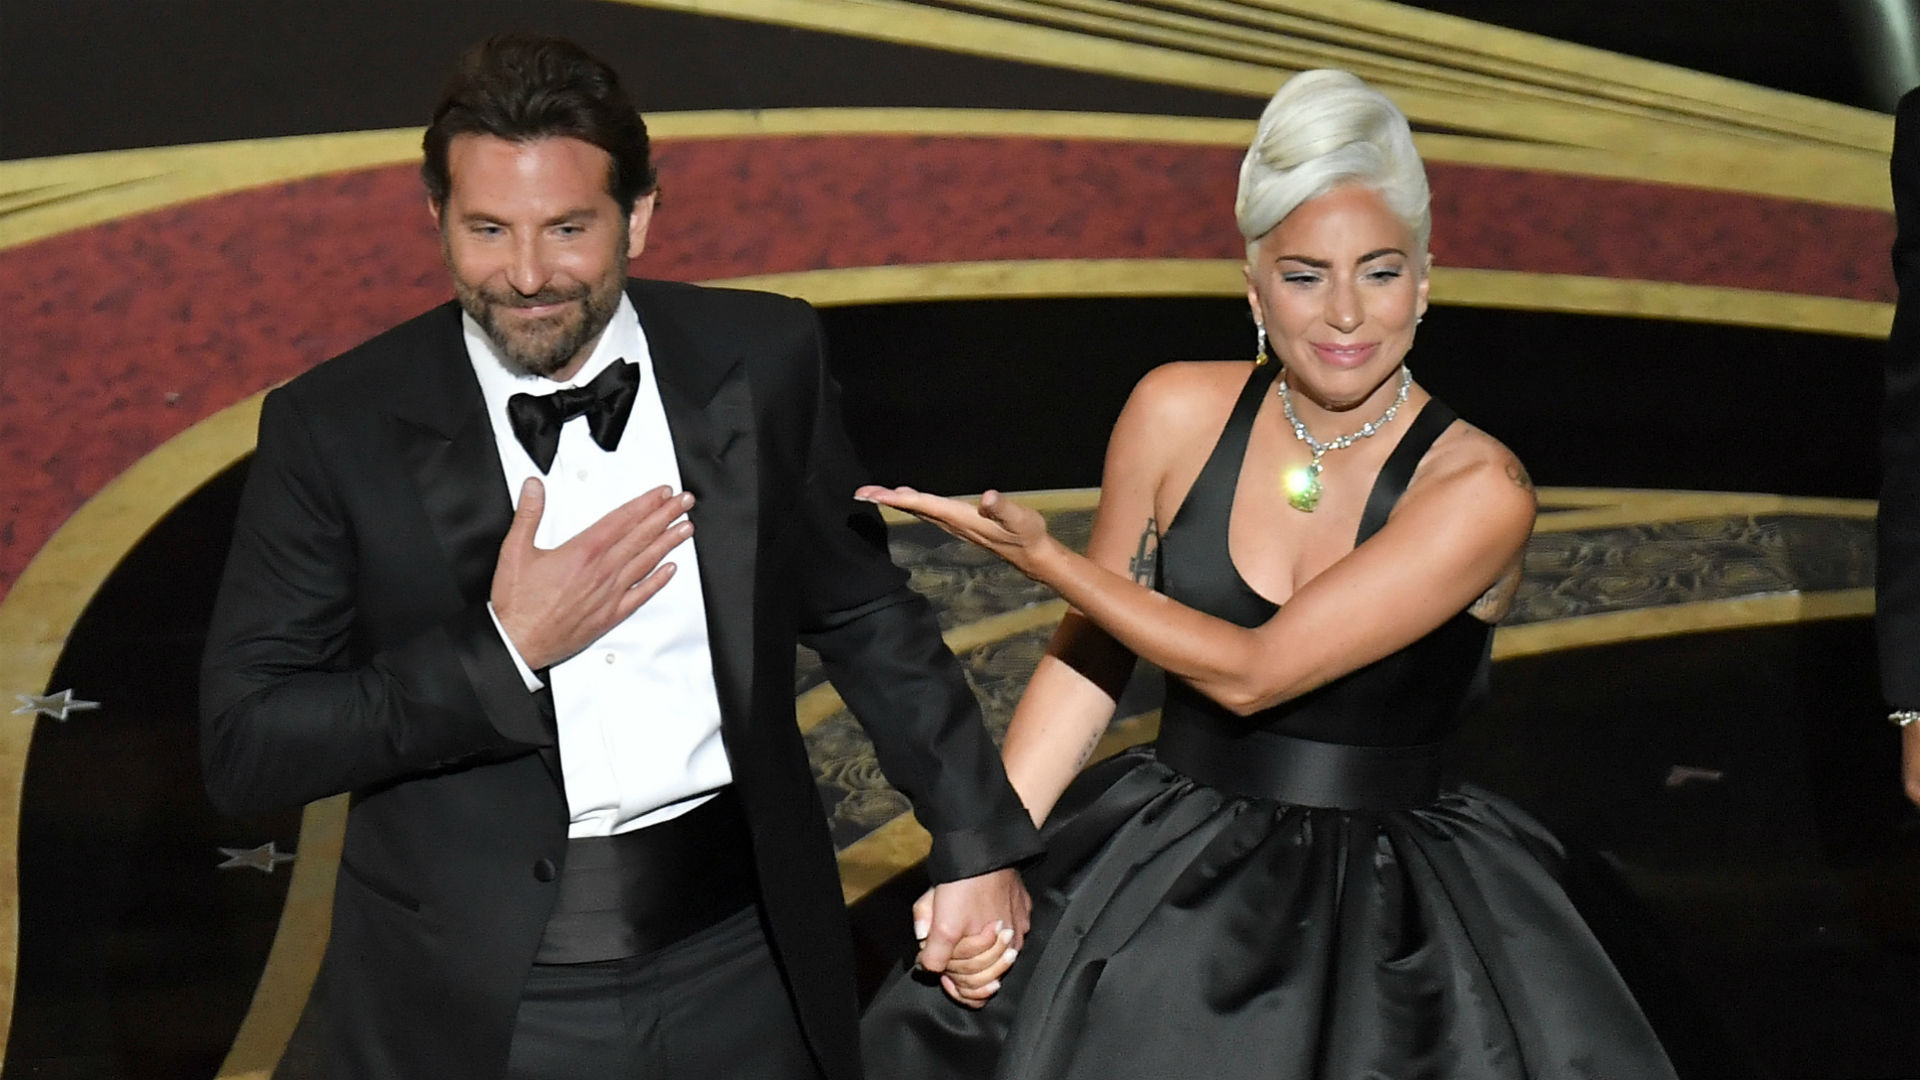 Photo of Bradley Cooper and Lady Gaga at the Oscars 2019